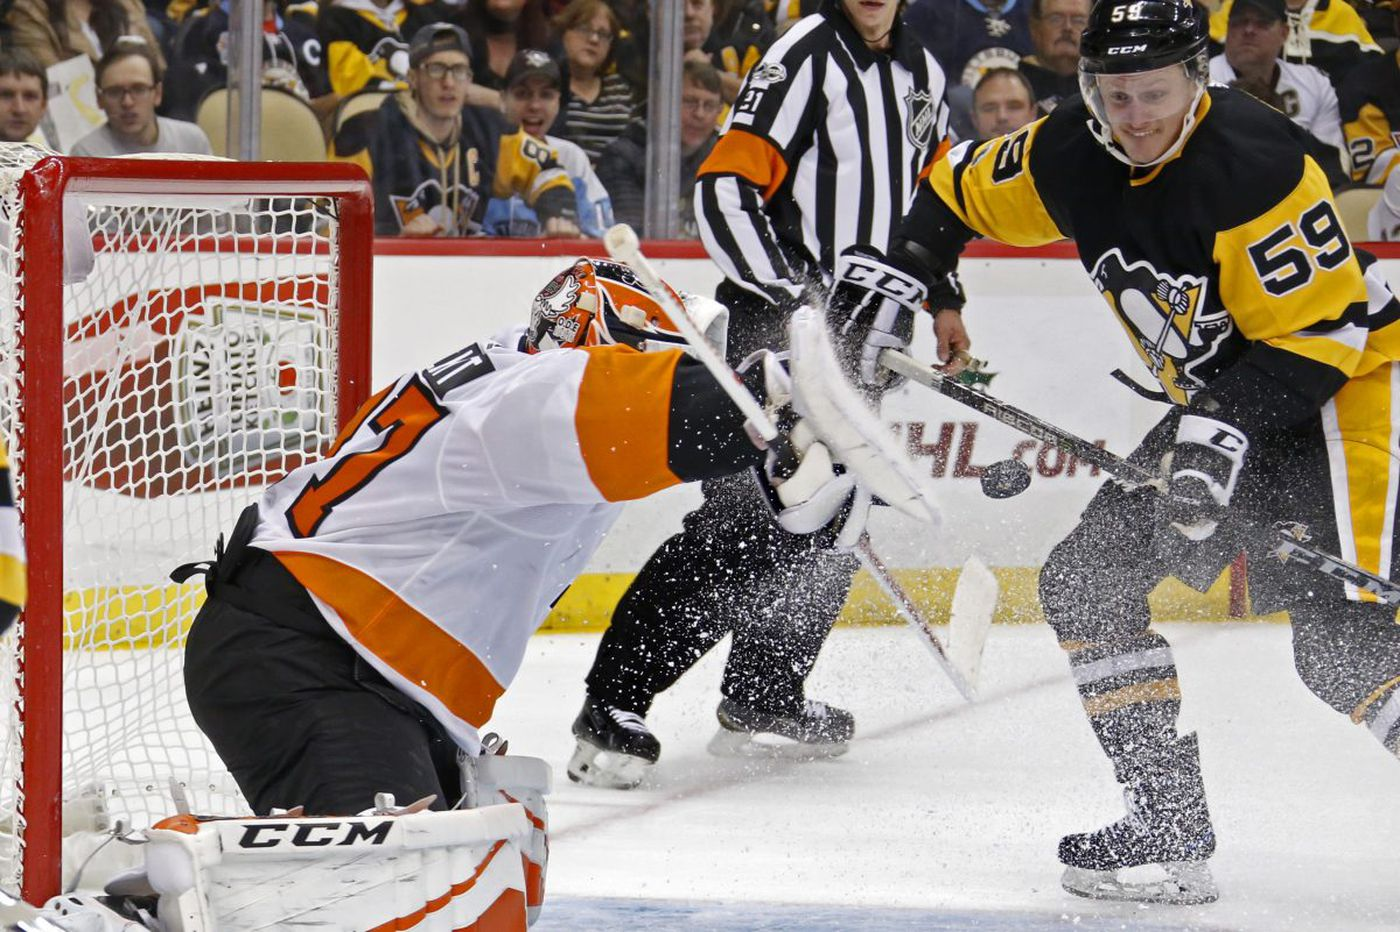 Flyers collapse at the end, lose in OT to Penguins as losing streak reaches 8